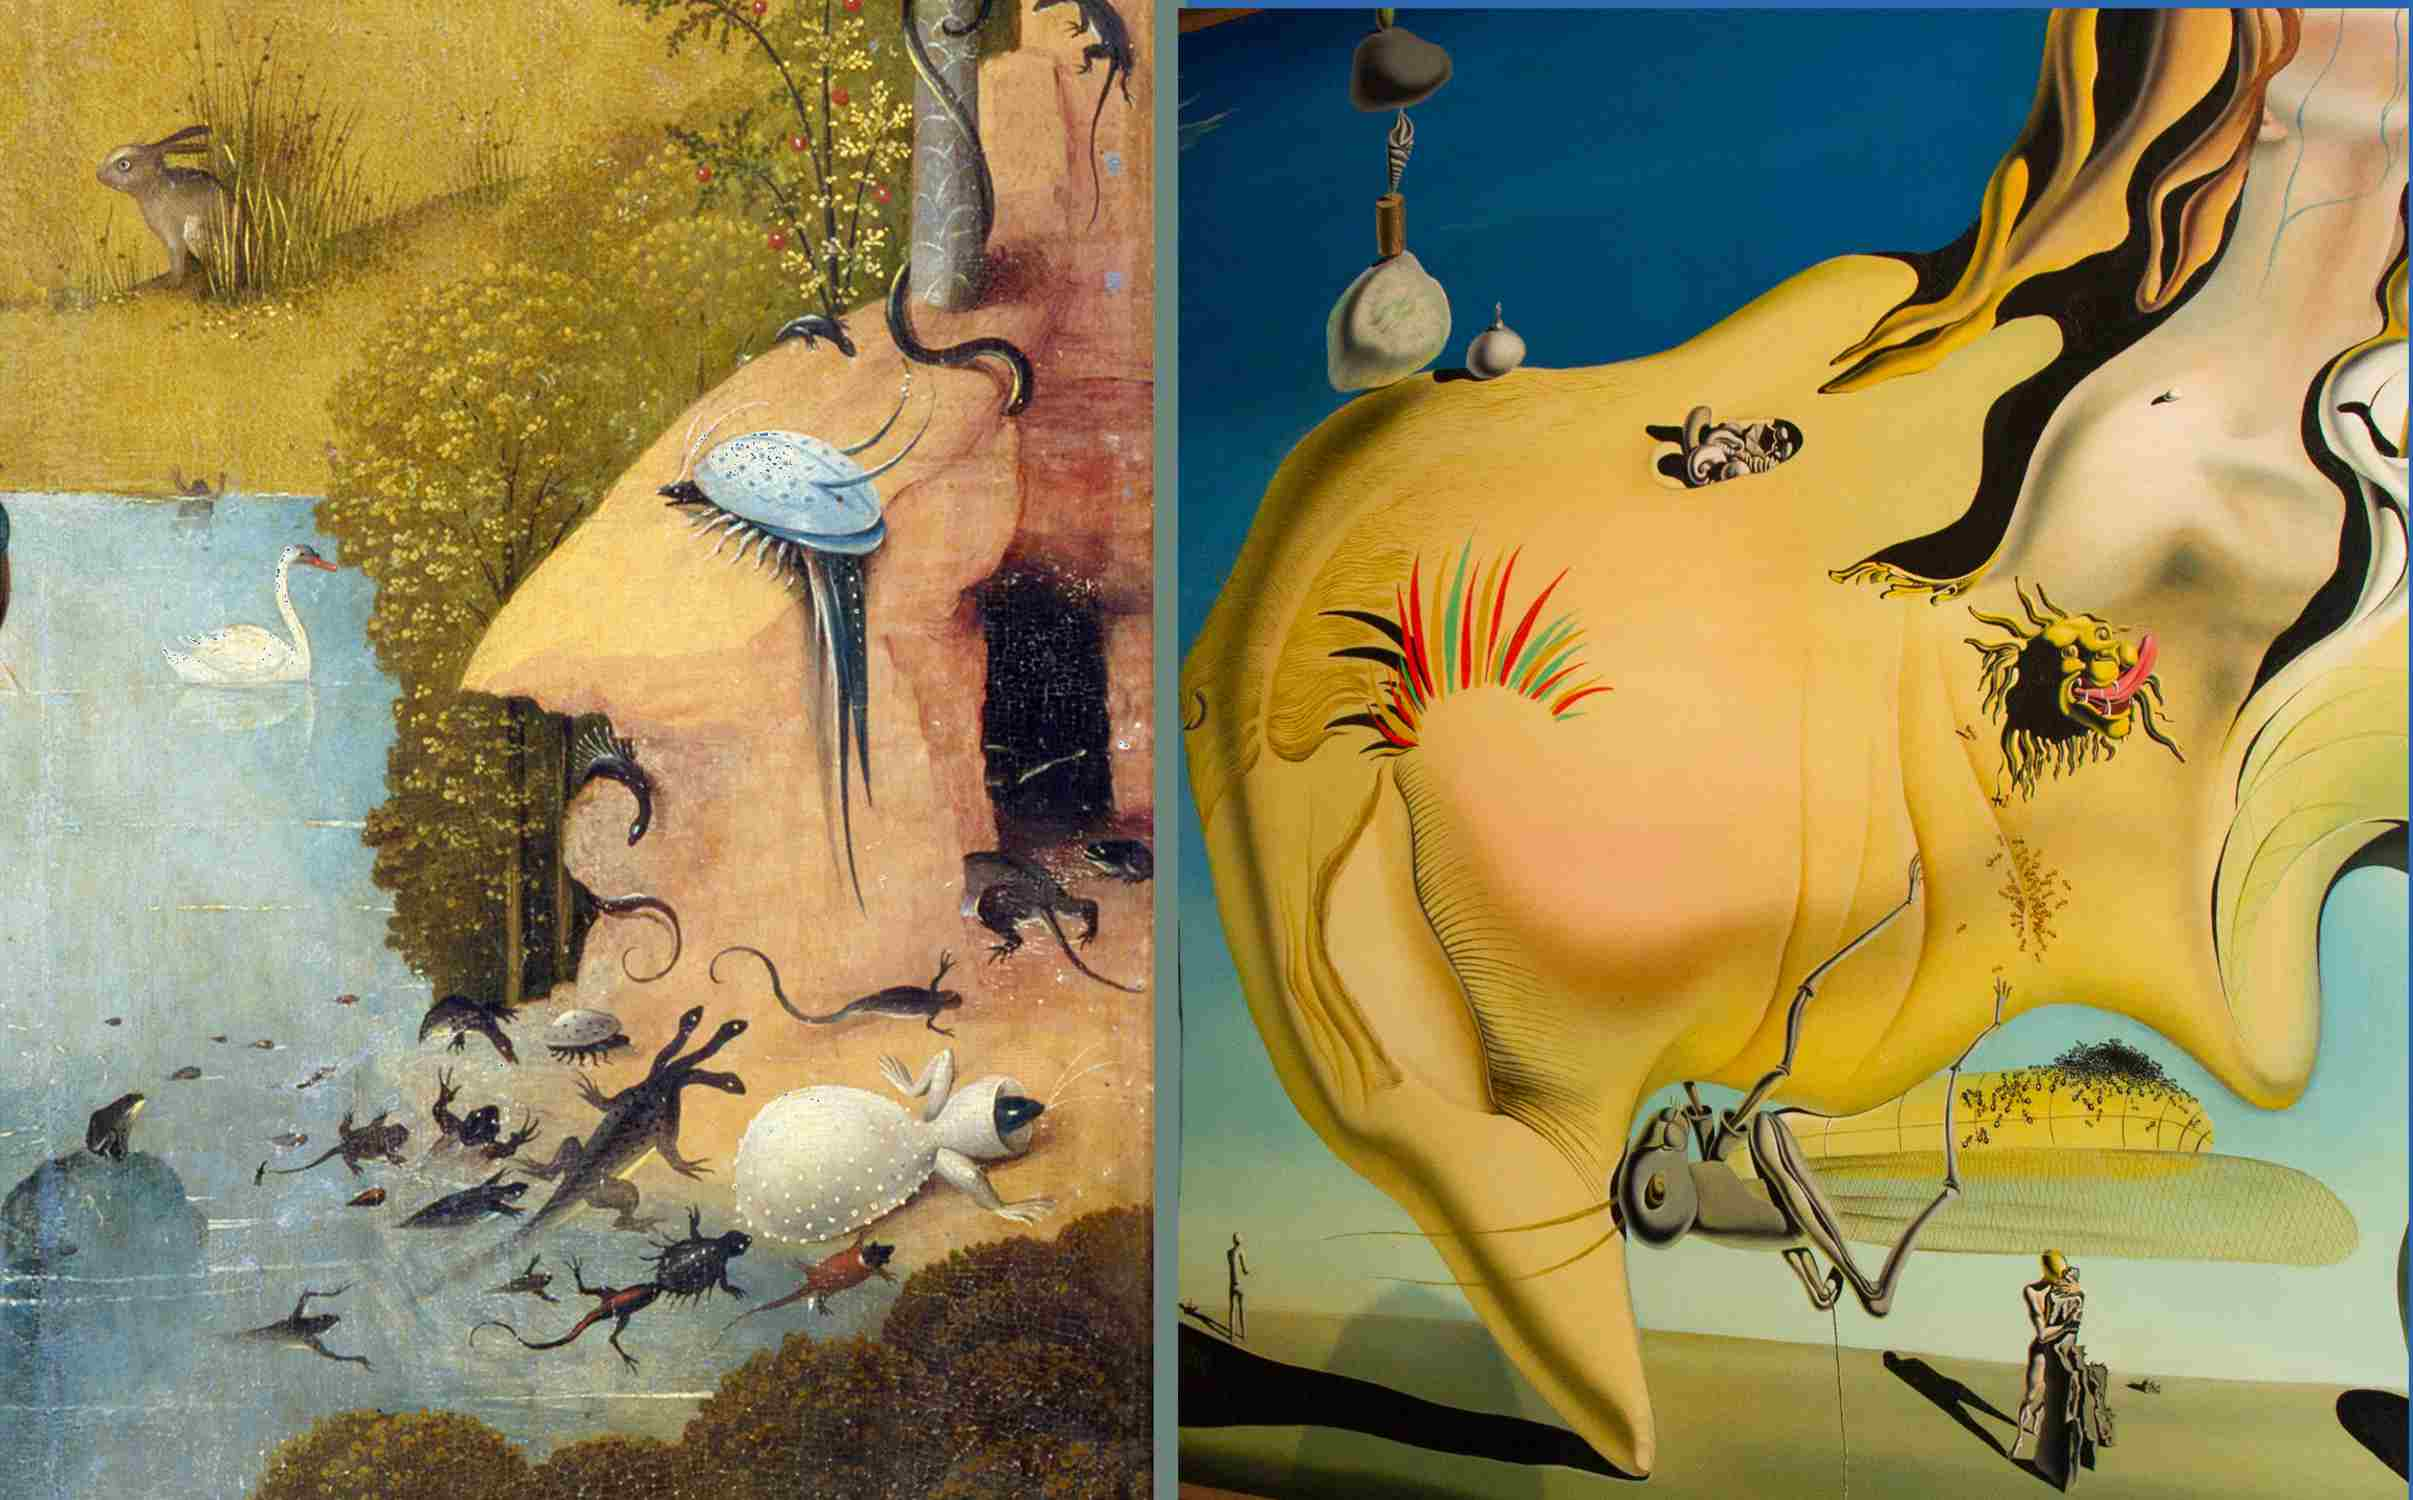 Surrealistic rock formations painted by Bosch and Salvador Dali